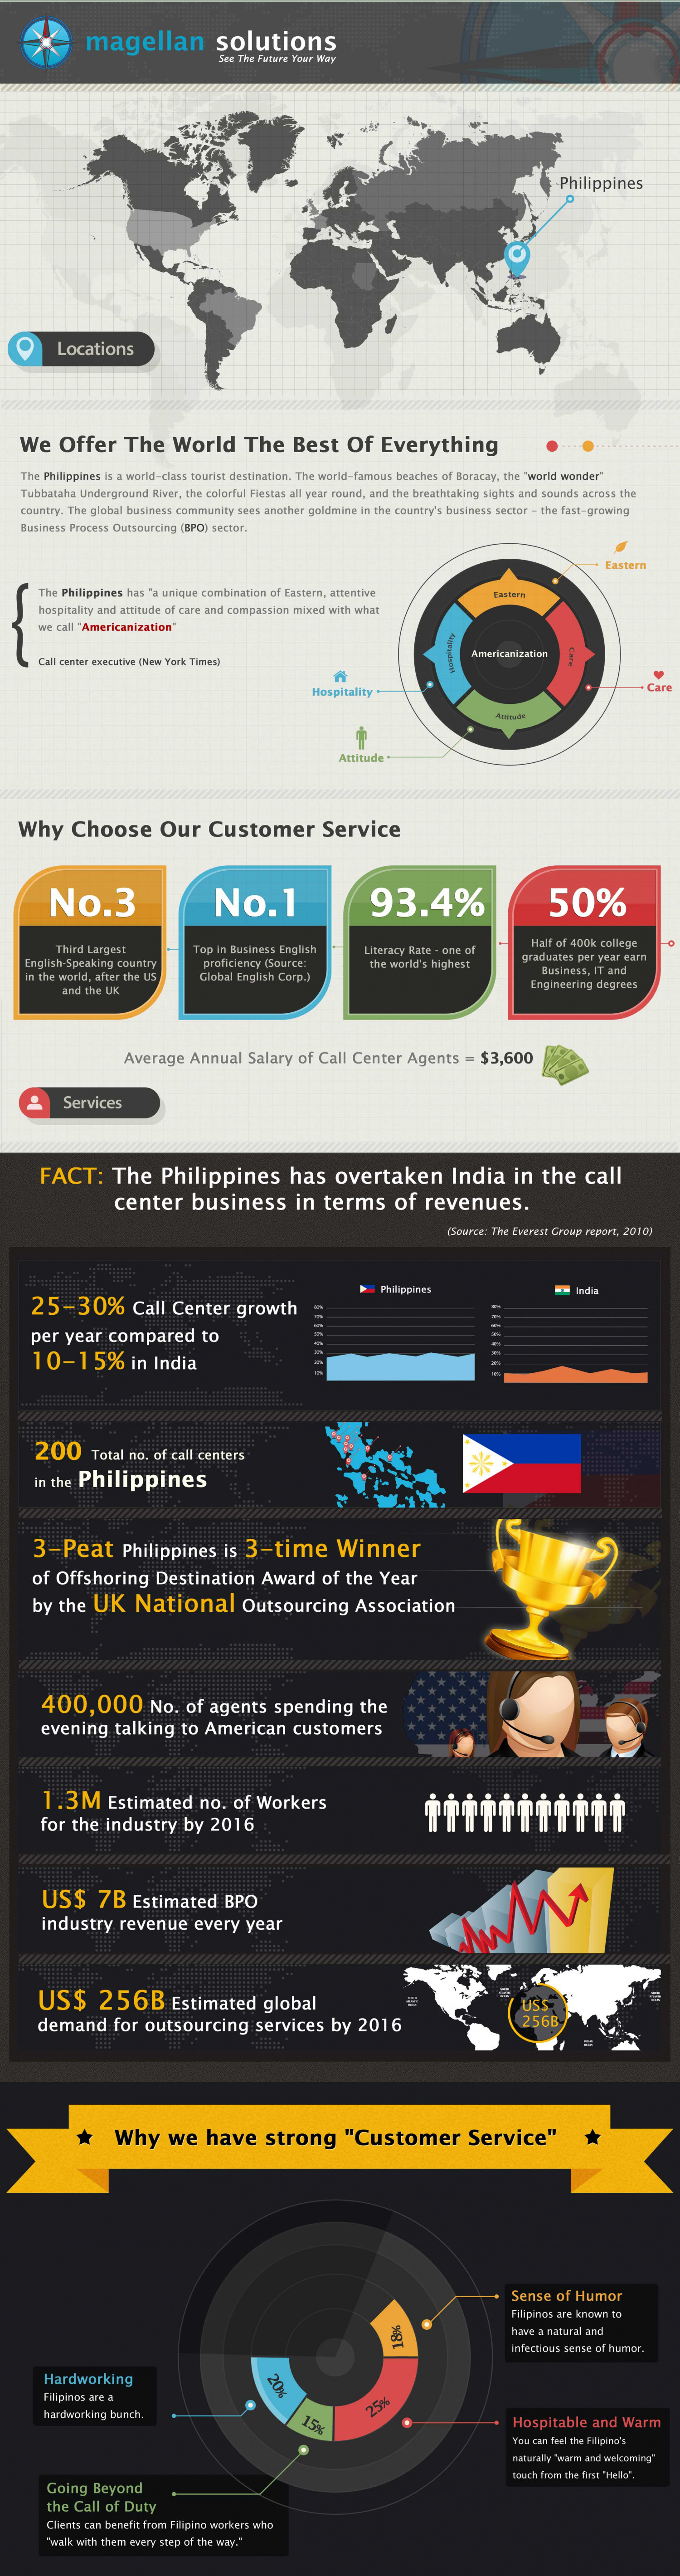 Why Choose The Philippines? Infographic